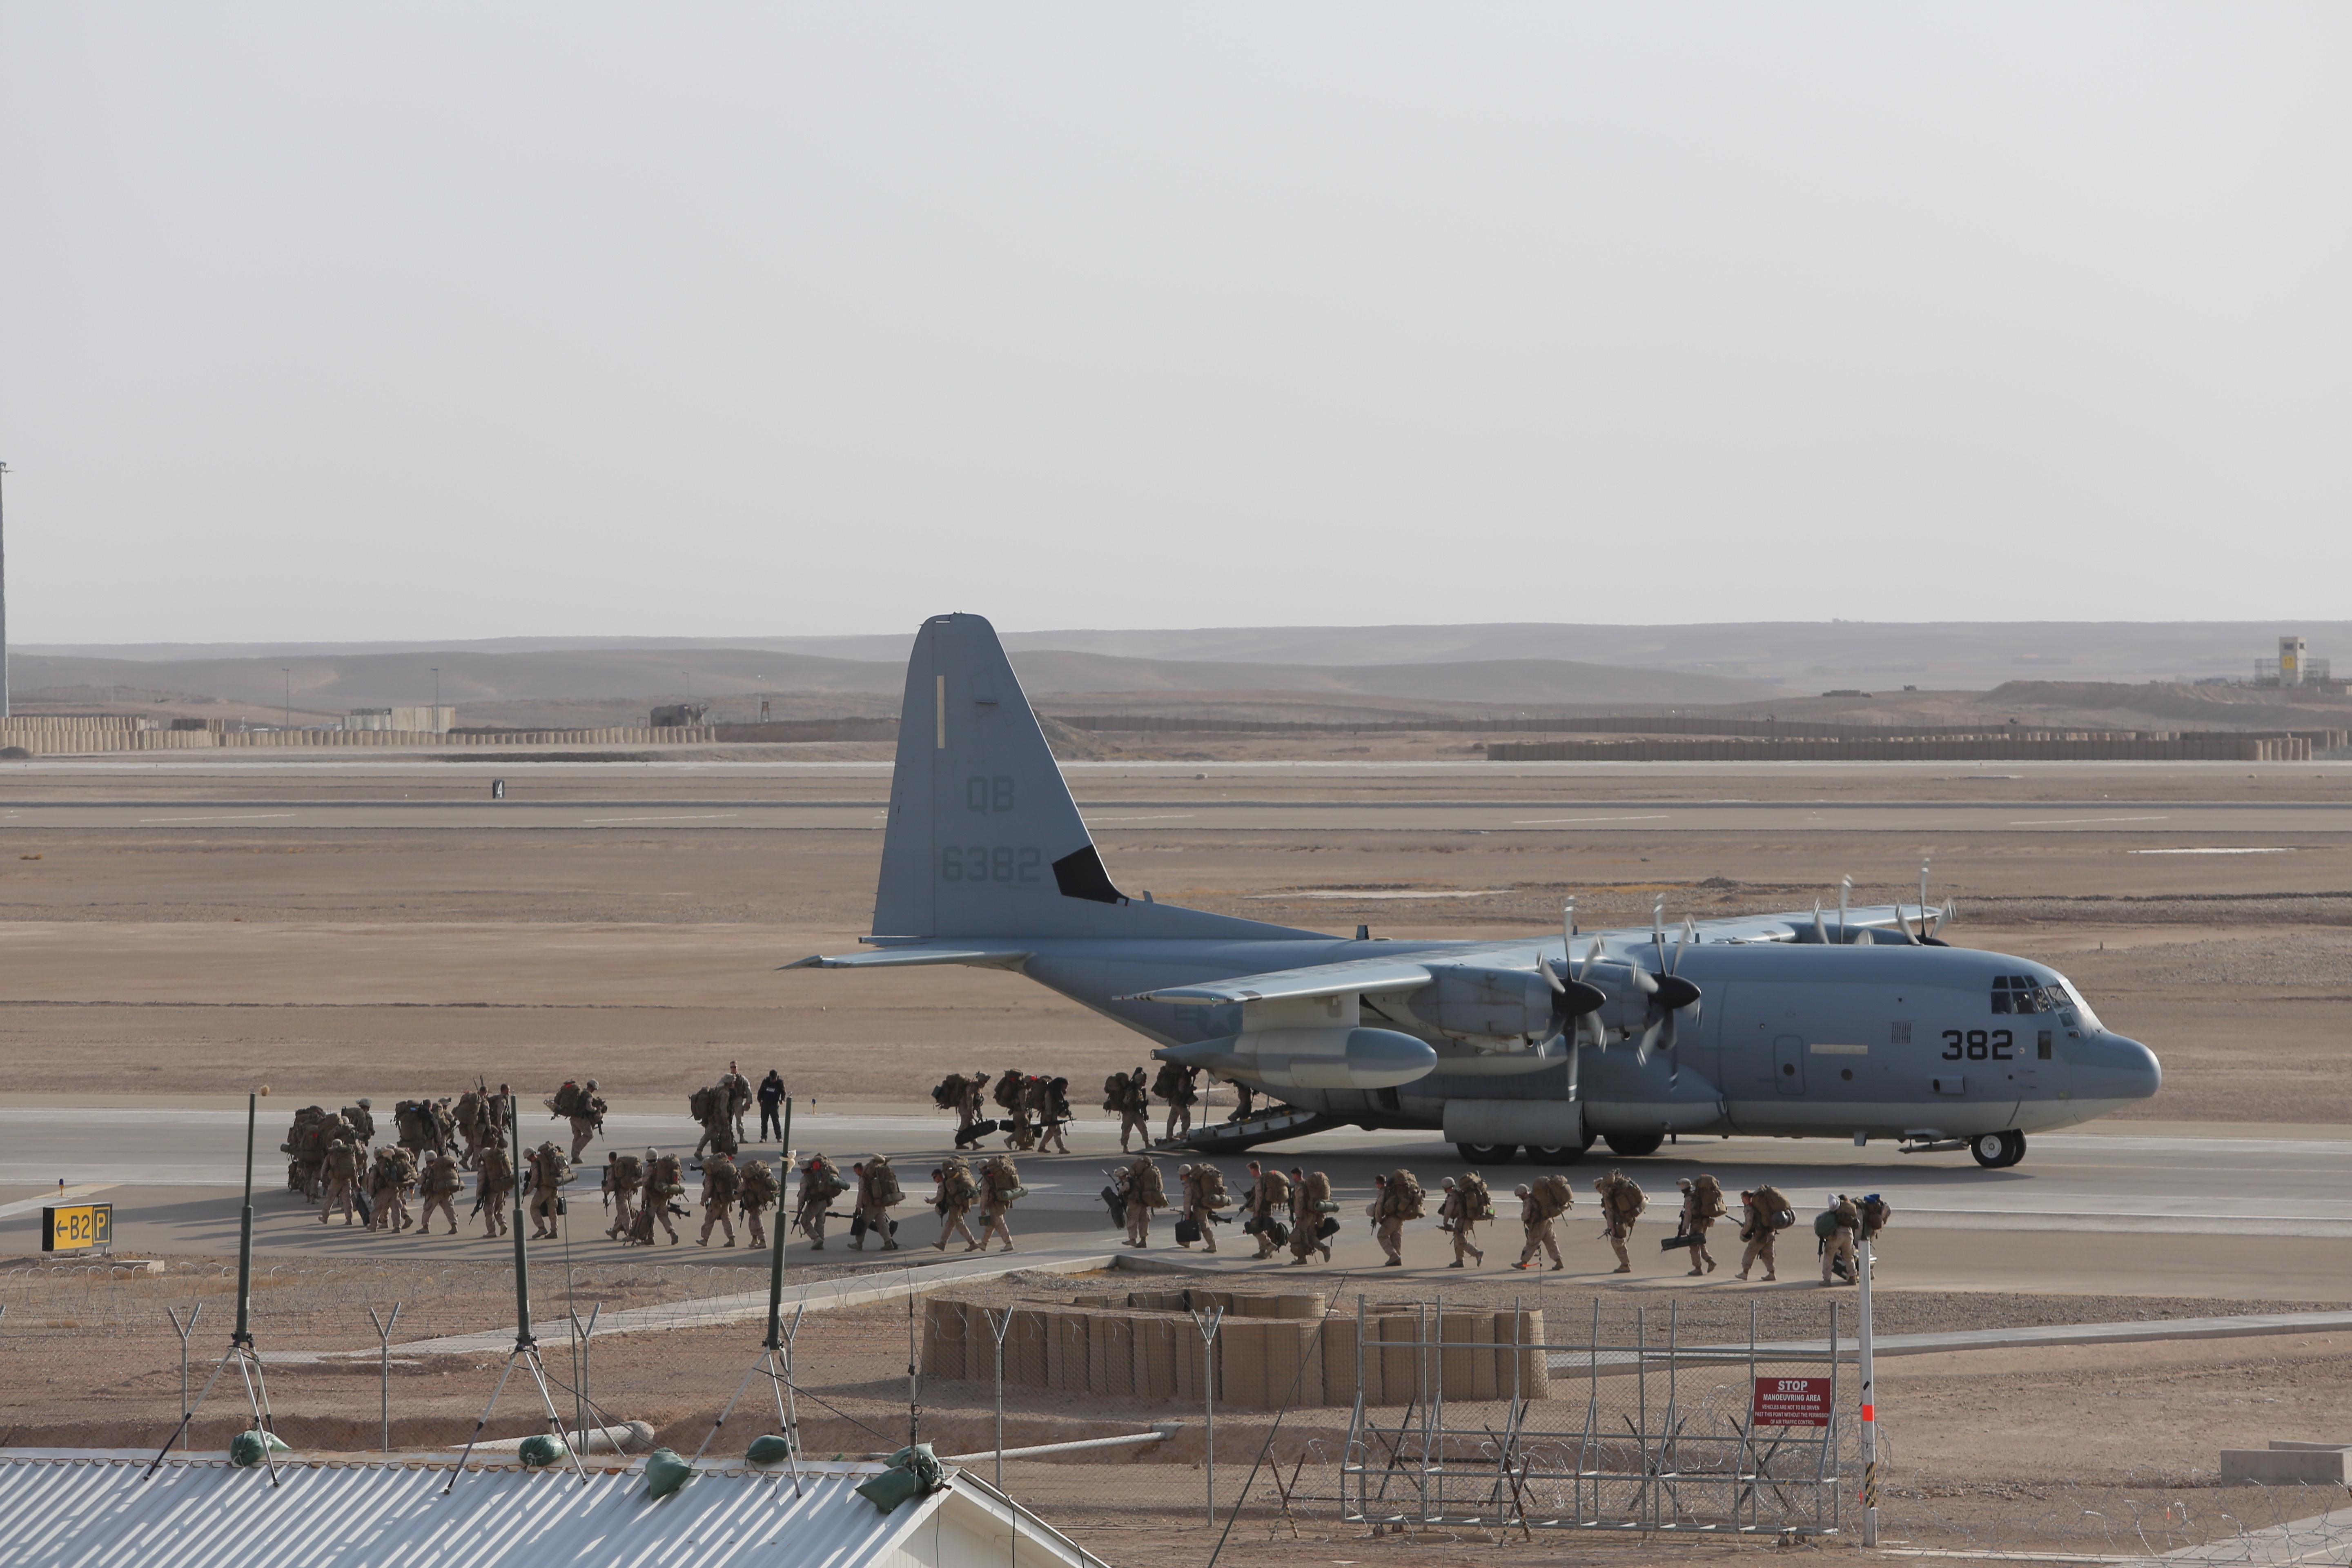 U.S. Marines with Regional Command (Southwest) (RC(SW)) board a KC-130 Hercules aircraft to depart the Bastion-Leatherneck Complex in Helmand province, Afghanistan October 27, 2014. The Marines departed following the end of RC(SW) operations in Helmand province. US Marine Corps photo.